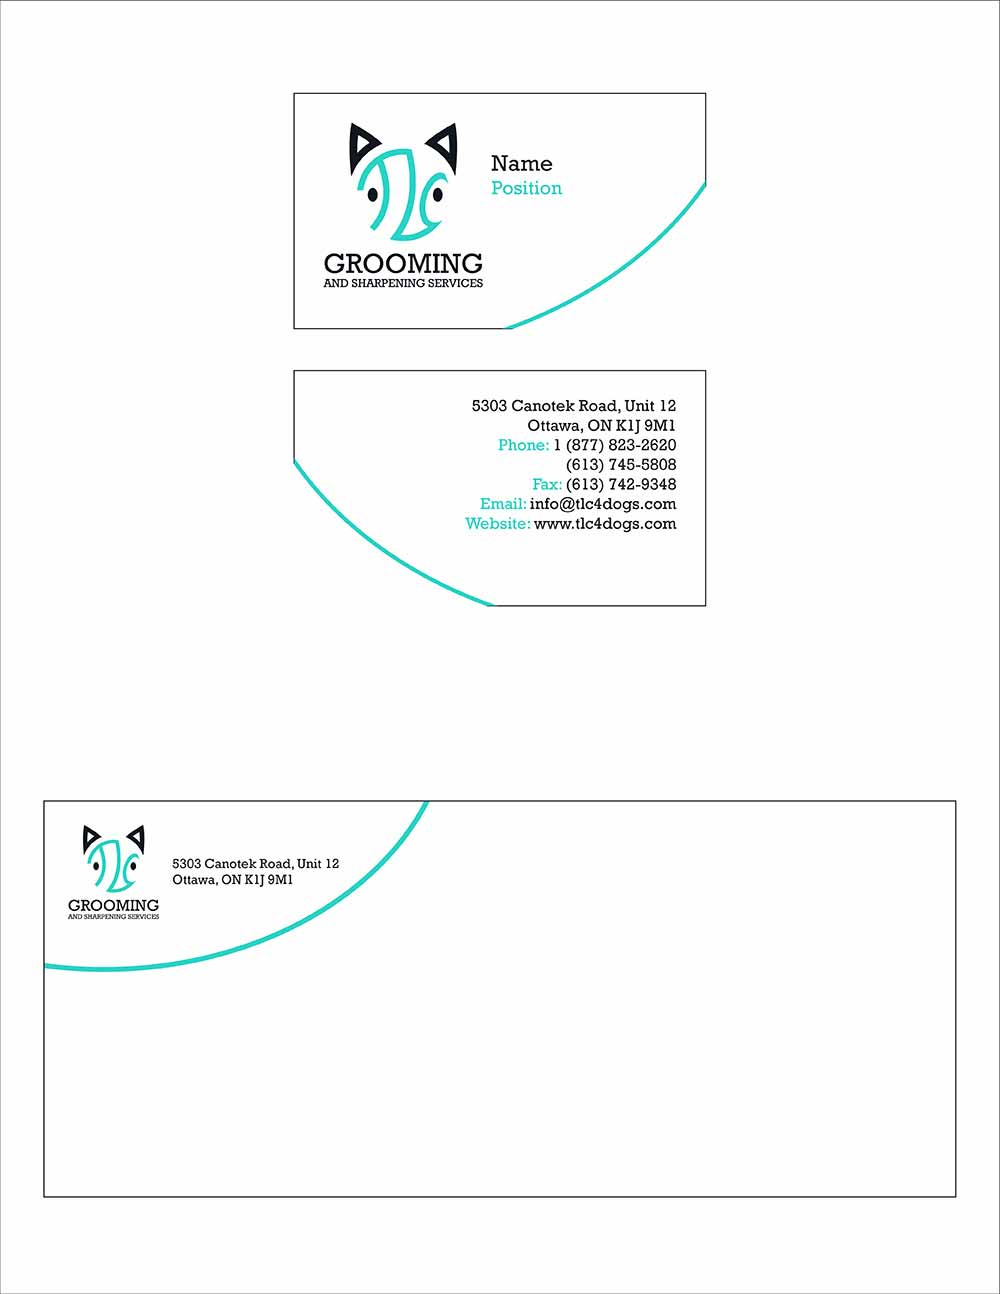 New business card and envelope design for TLC